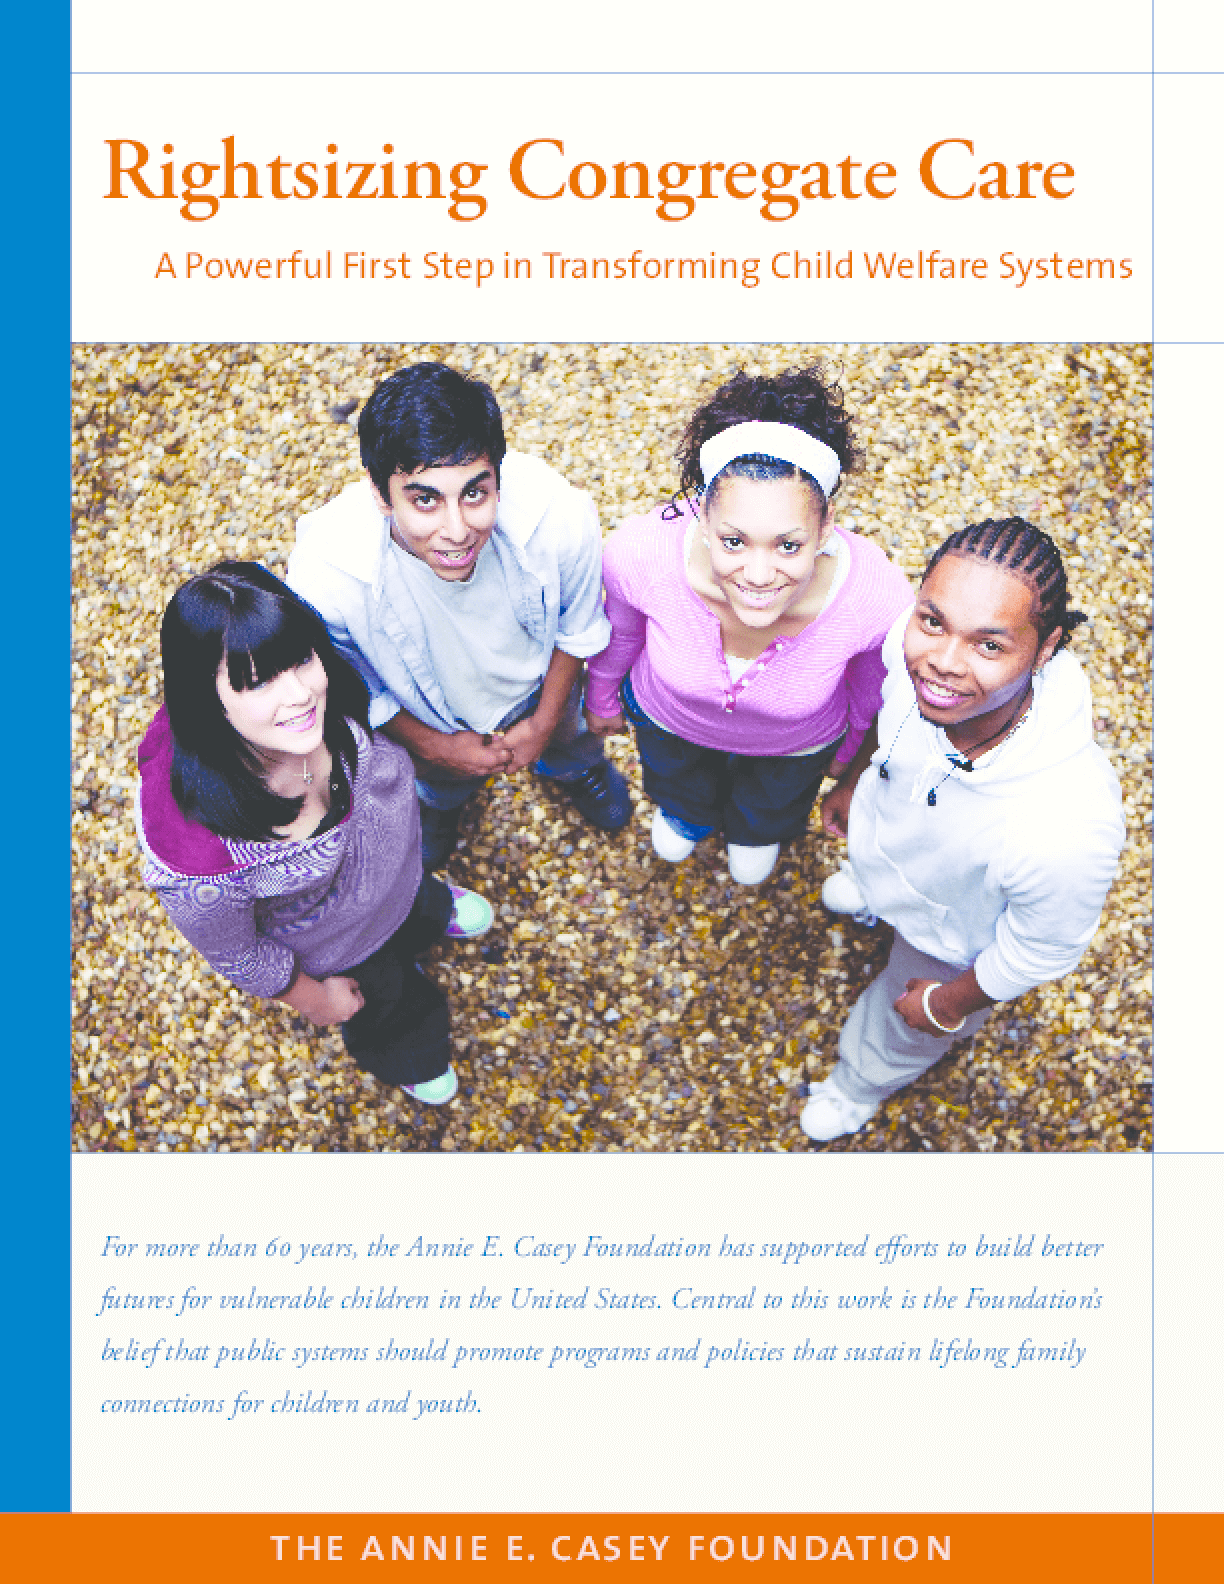 Rightsizing Congregate Care: A Powerful First Step in Transforming Child Welfare Systems